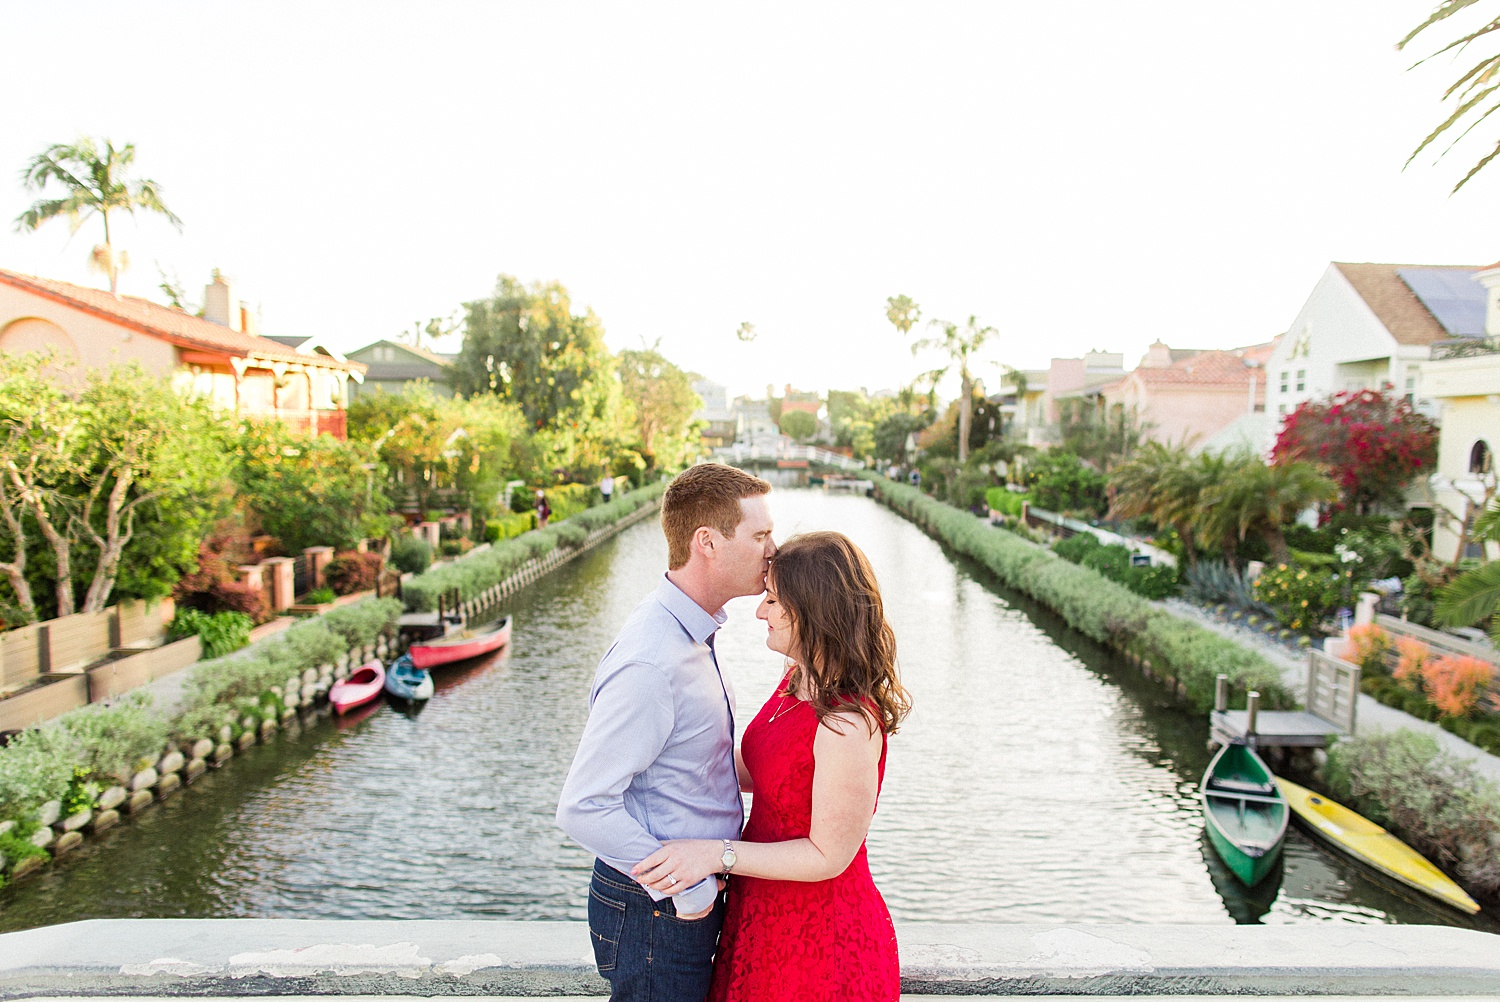 thevondys.com | Los Angeles Engagement | Venice Canals | The Vondys